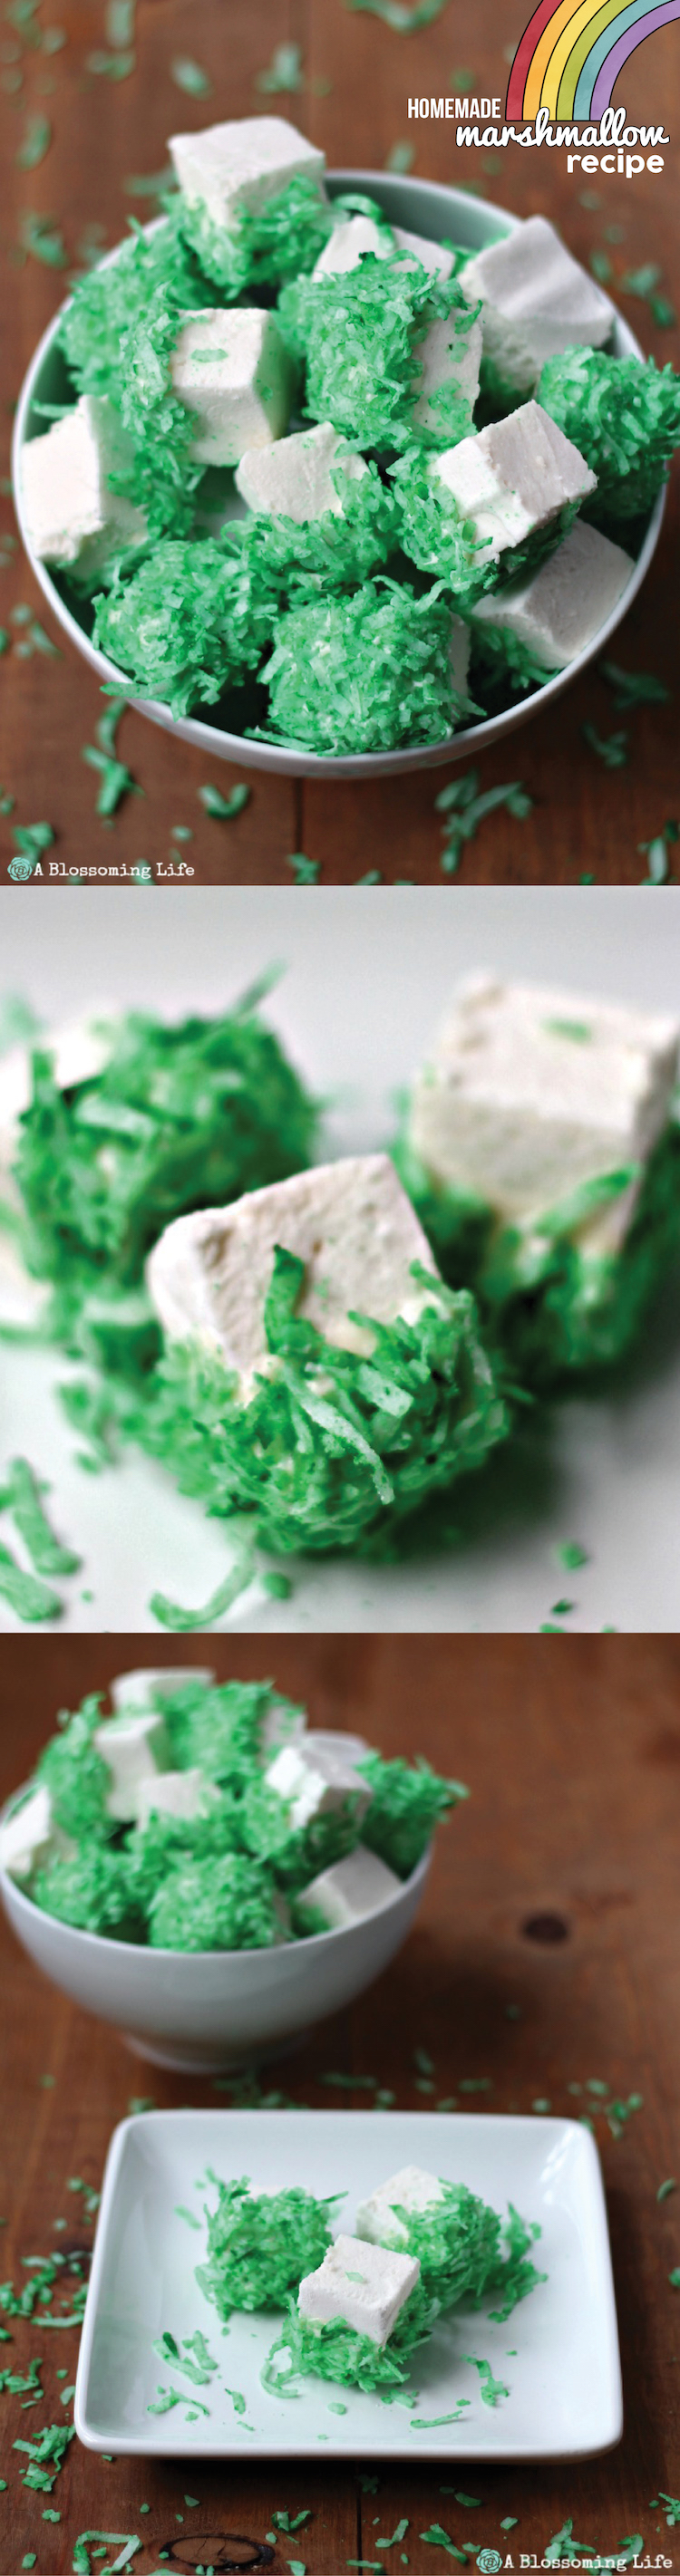 How to make Homemade Marshmallows for St Patrick's Day